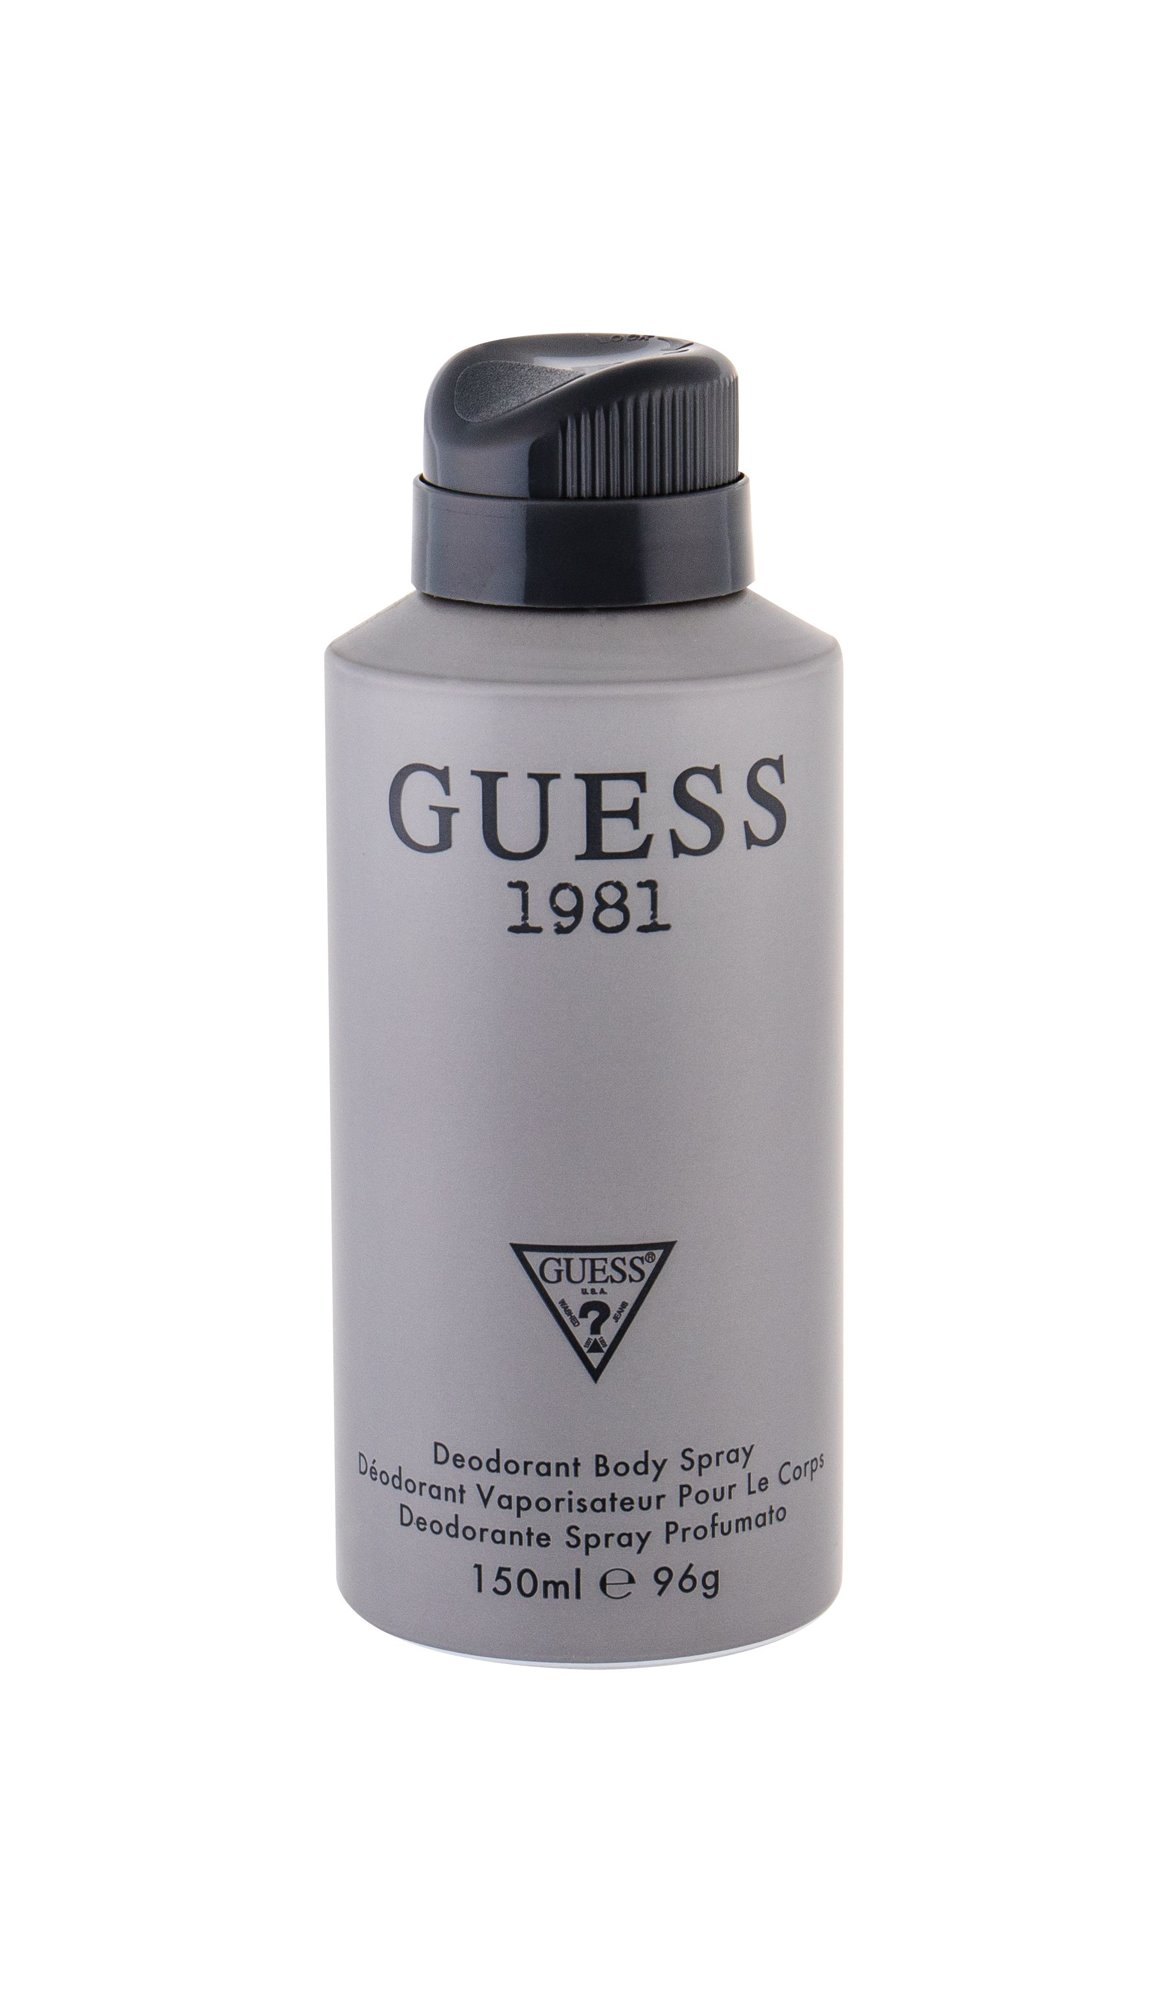 GUESS Guess 1981 Deodorant 150ml